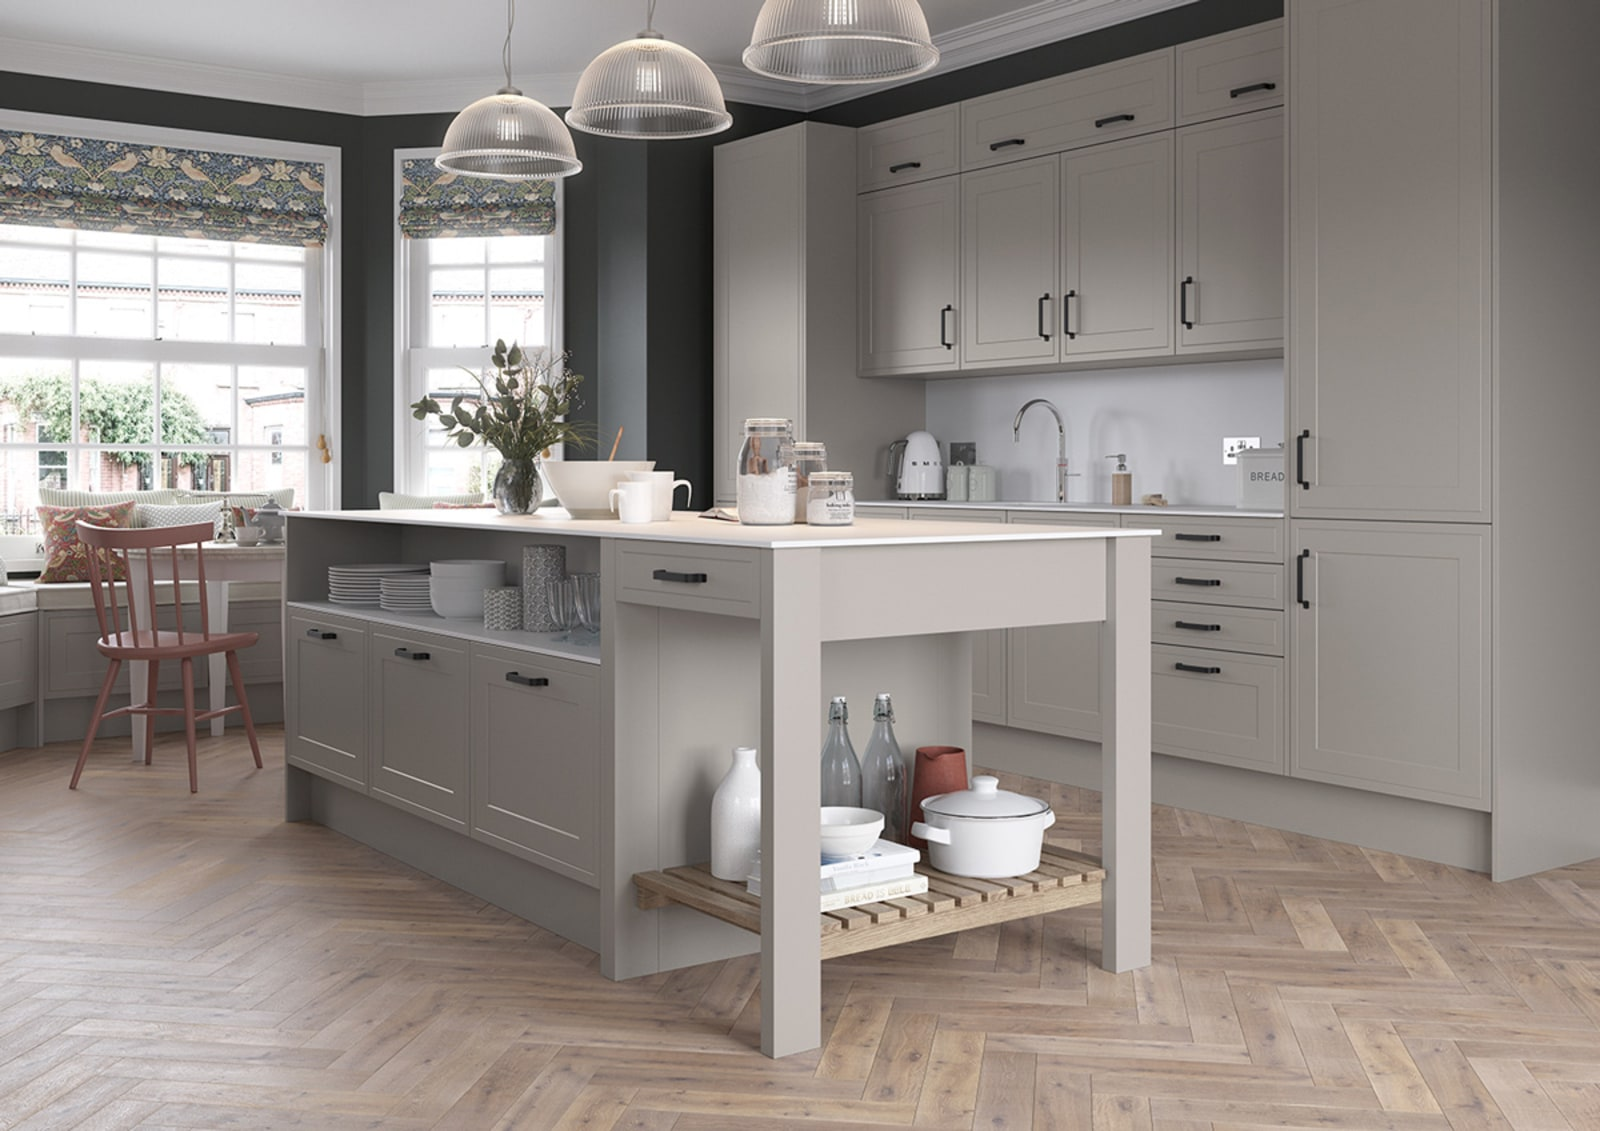 Tribeca kitchen by Magnet. Smooth matt effect with sophisticated finishes and available in three colours